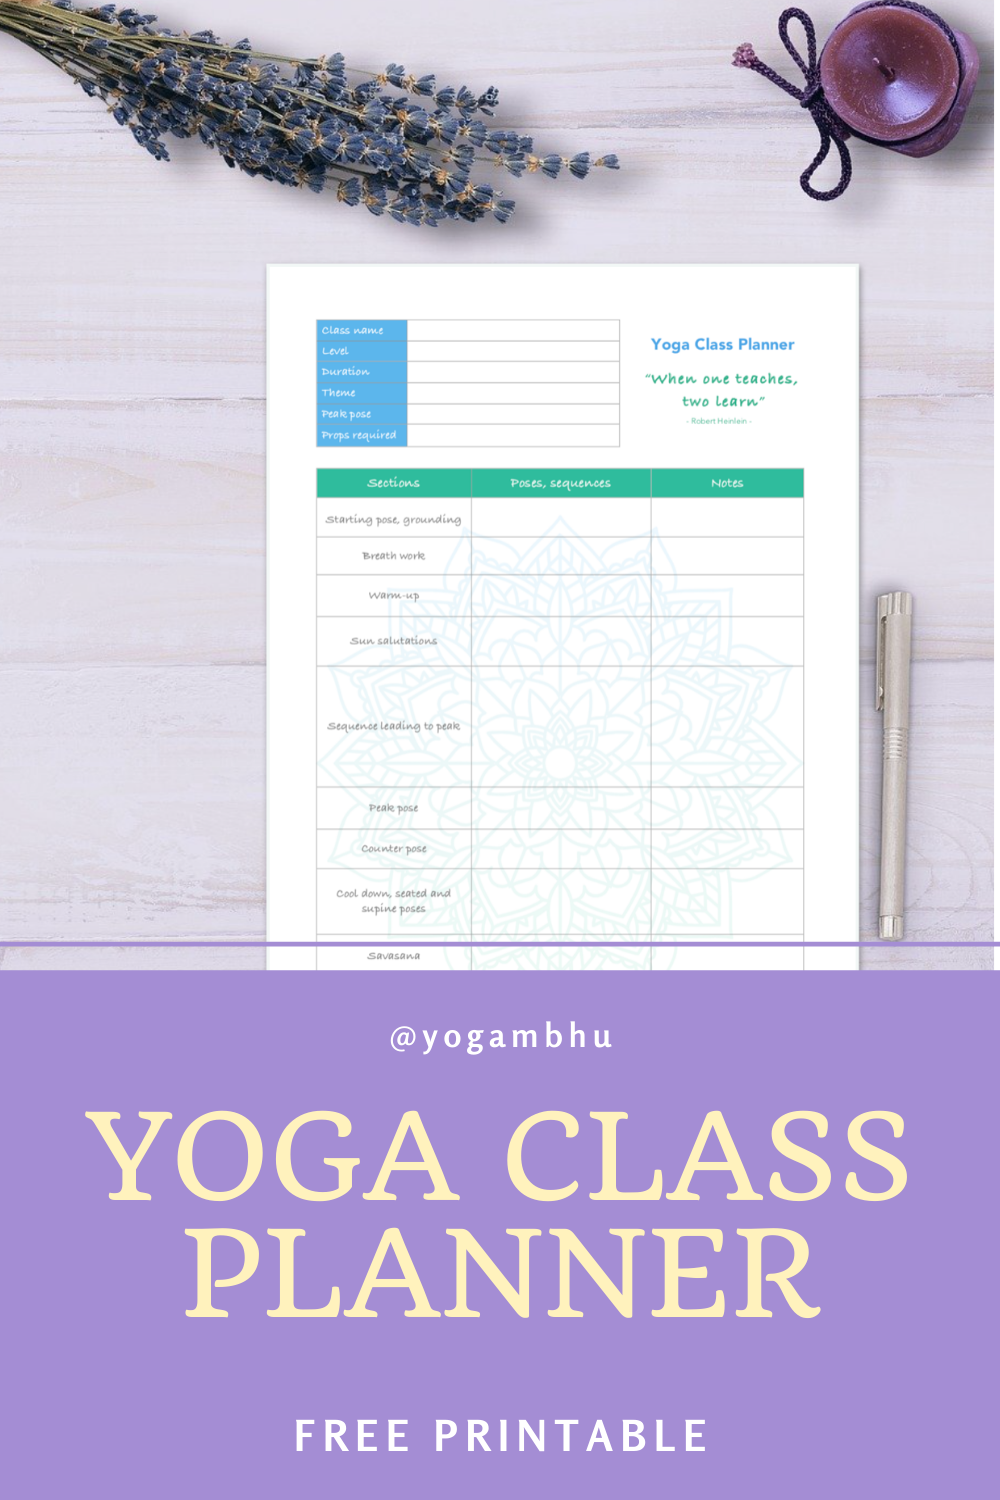 Are you a yoga teacher who needs a bit more organisation with class planning? Do you love 💗 mandalas and nice stationery? Then this yoga class planner is for you. Click on the link and download the free template. Create several plans for vinyasa flow classes and keep them all arranged in a nice folder. Enjoy the yoga 🧘♀️ class planning! #yogateacher #yogaclassplanner #yogaprintable #printableforyogatechers